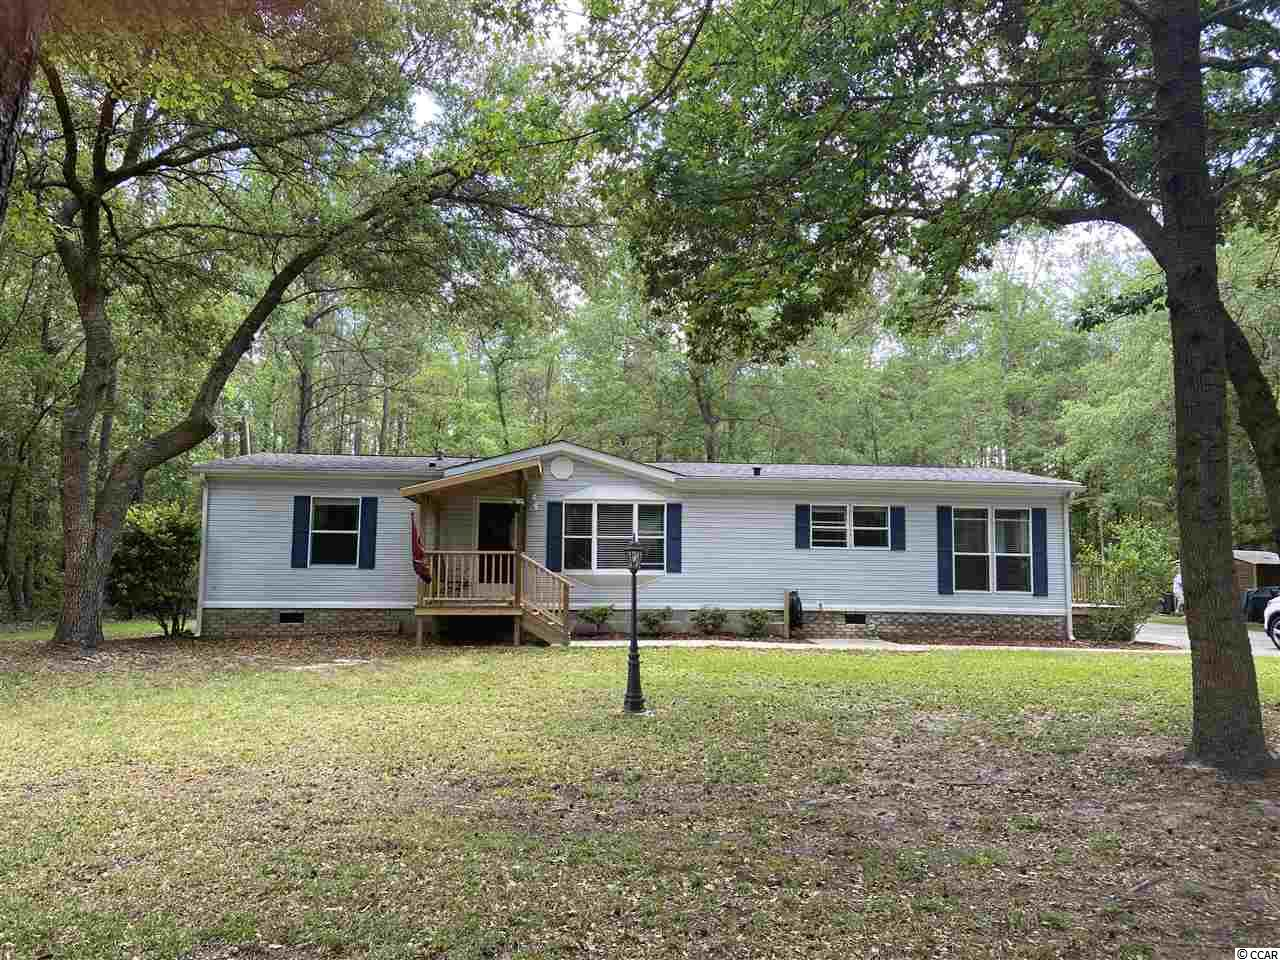 GREAT LOCATION OUT FROM THE MAINSTREAM BUT CLOSE TO THE BEACH. THIS HOUSE HAS 3 BEDROOMS AND 2 BATHS FULLY FURNISHED WITH THE EXCEPTION OF A FEW PICTURES ON THE WALLS. THIS HAS JUST OVER 2.5 ACRES WITH NO HOA'S. BUILD YOUR DREAM HOUSE WITH THE ADDITIONAL LAND.